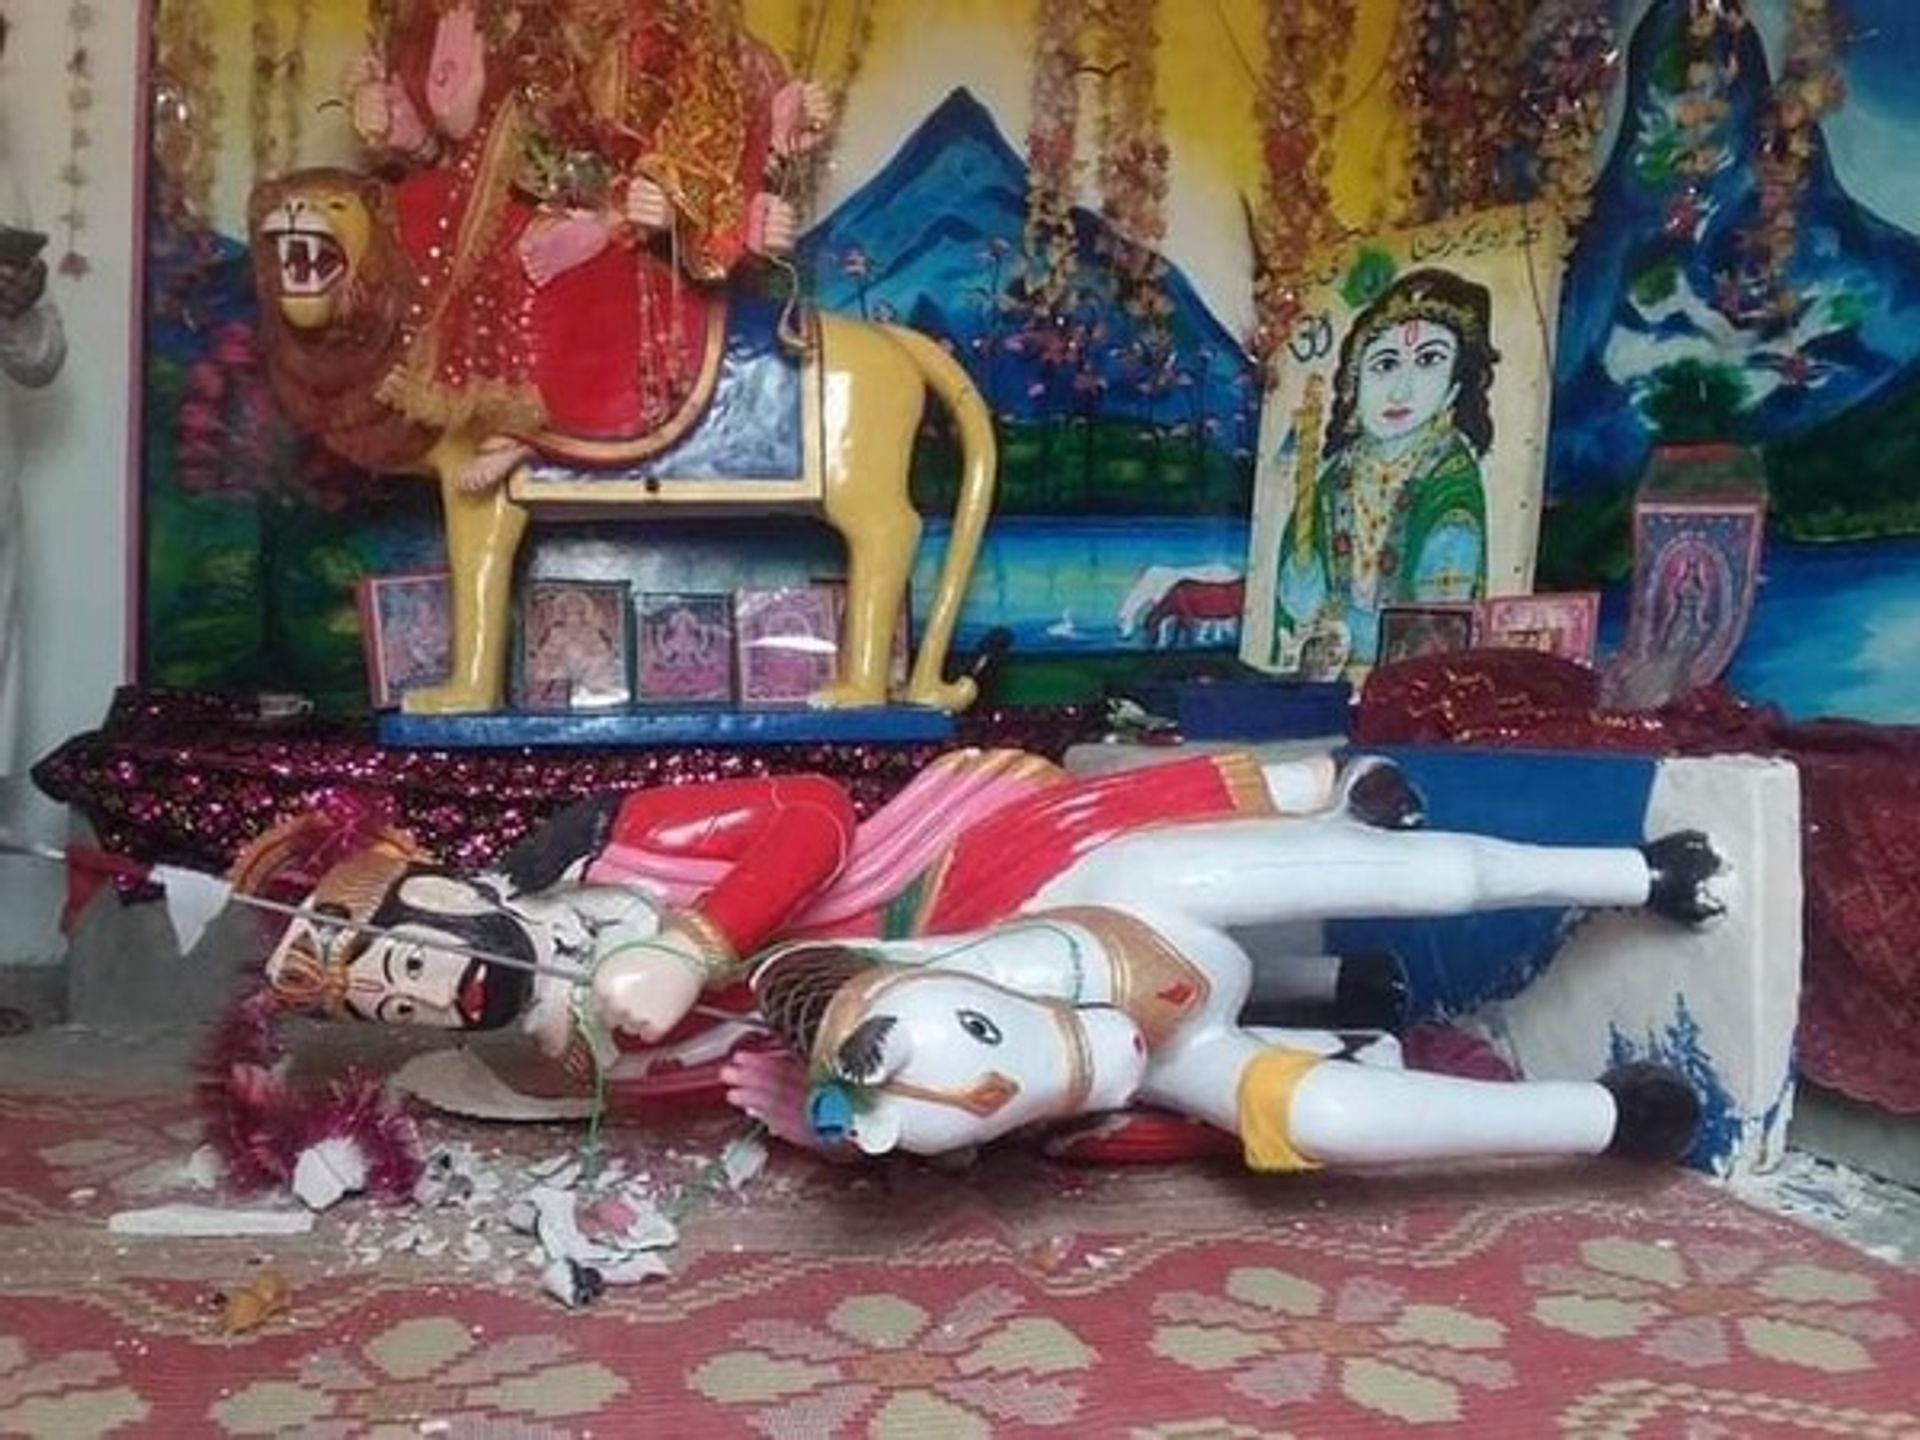 Ganesha temple in Bhong was attacked on Wednesday